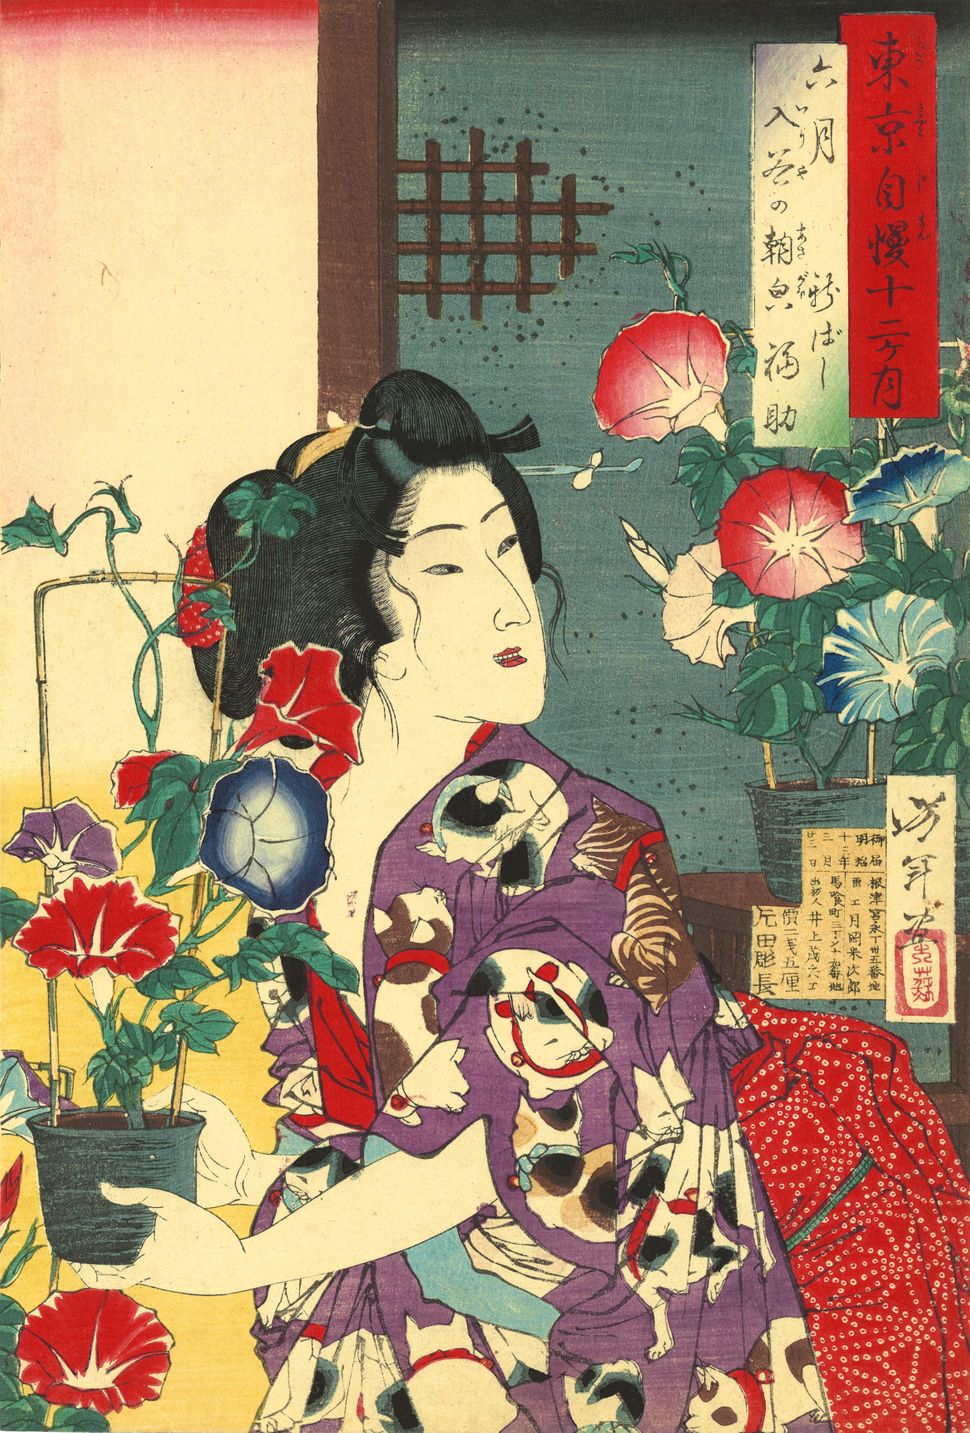 Tsukioka Yoshitoshi (1839–1892), Sixth Month: Fukusuke of Shinbashi with Morning Glories at Iriya from the series of Pride of